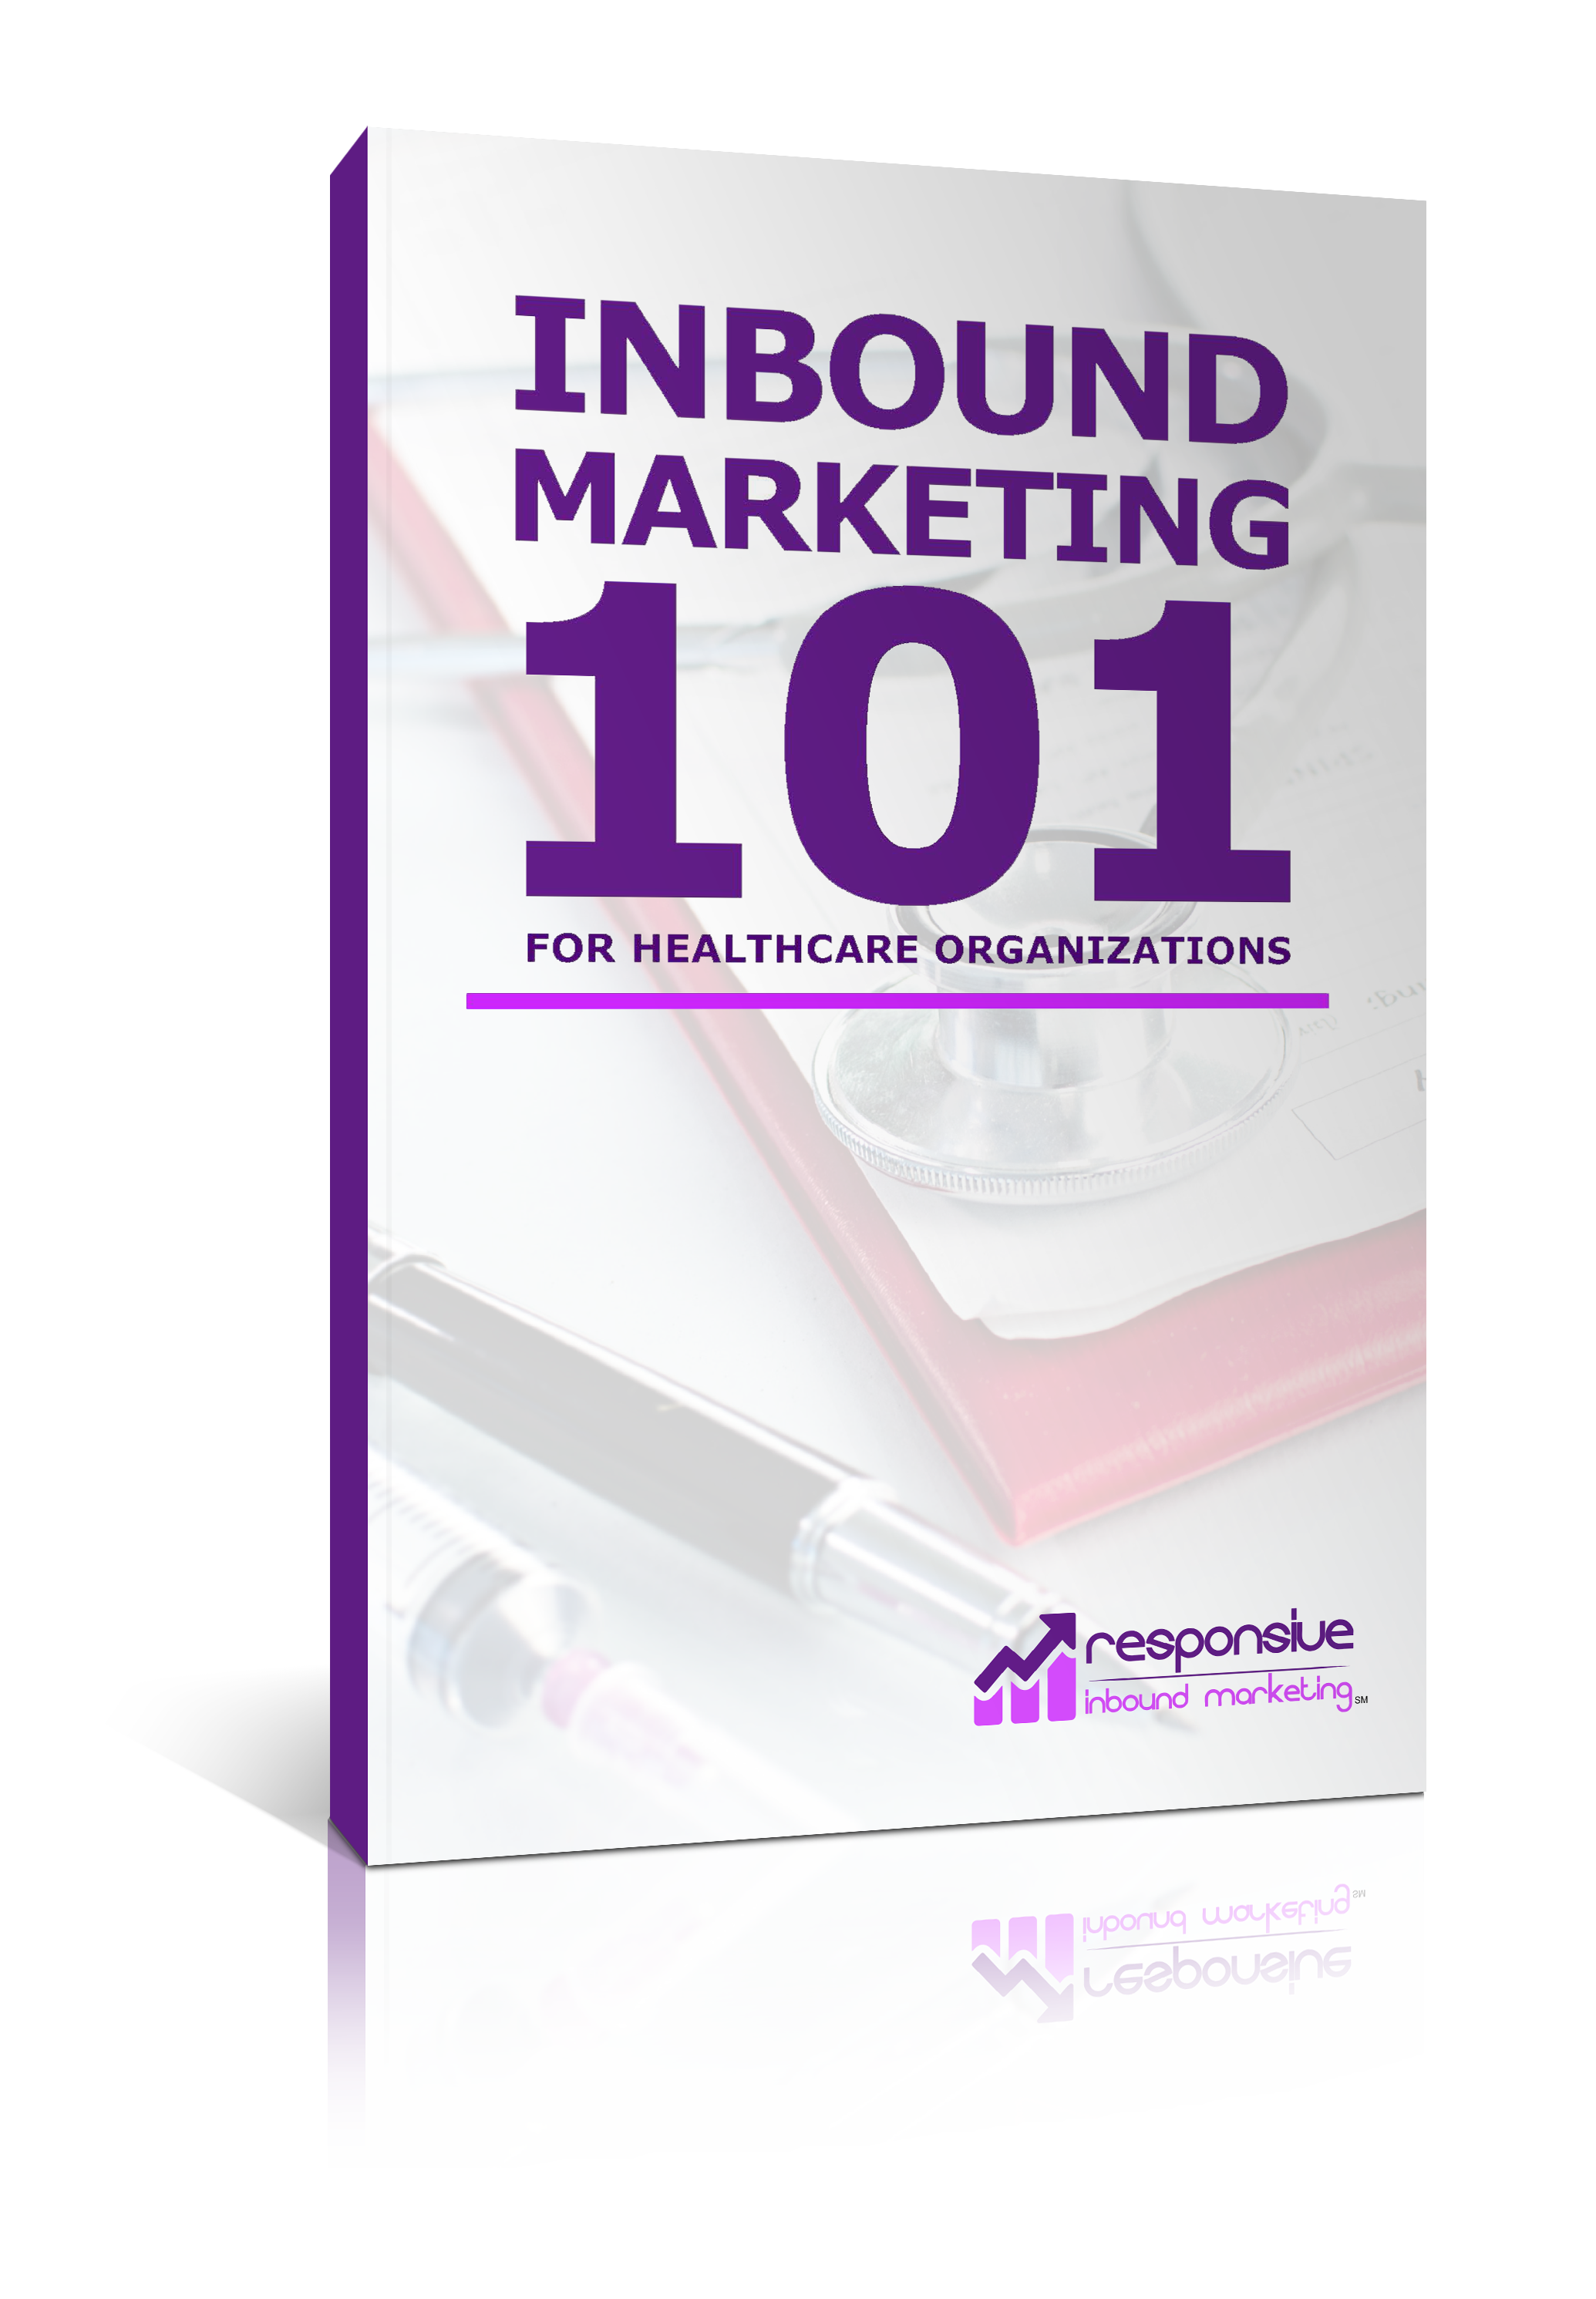 Inbound marketing for healthcare